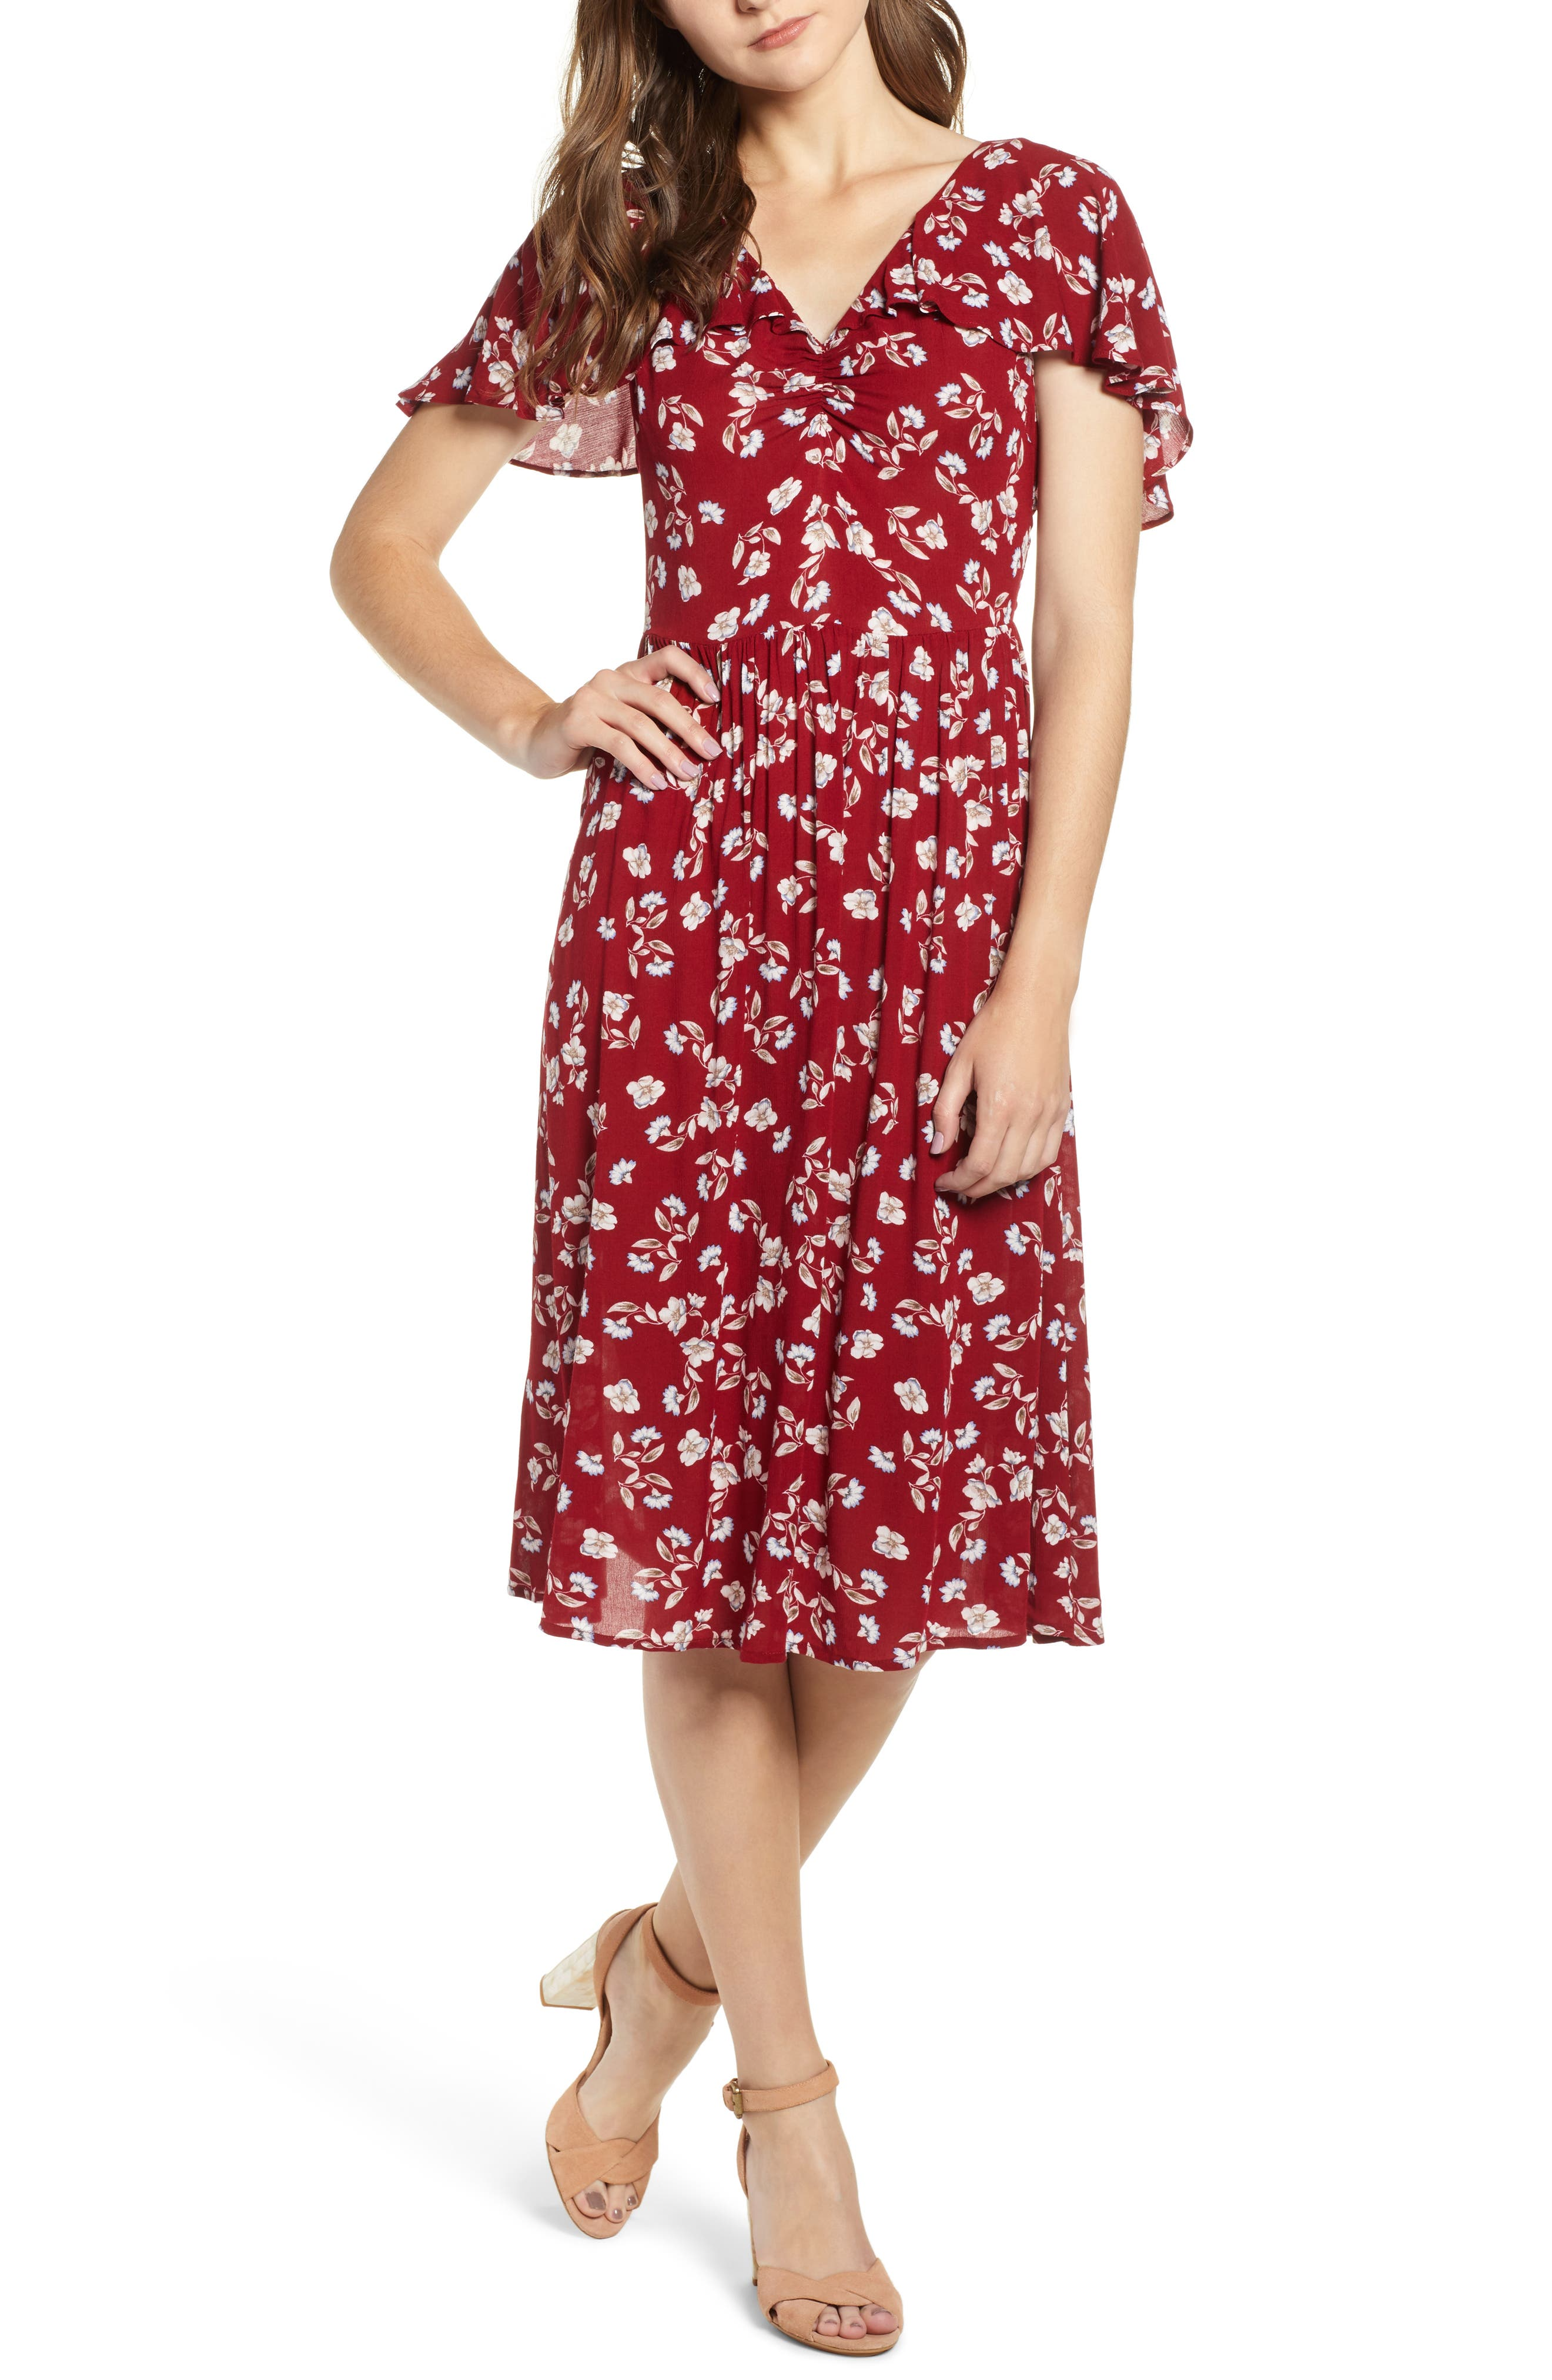 1930s Outfit Ideas for Women Womens Moon River Floral Midi Dress Size X-Large - Red $72.00 AT vintagedancer.com